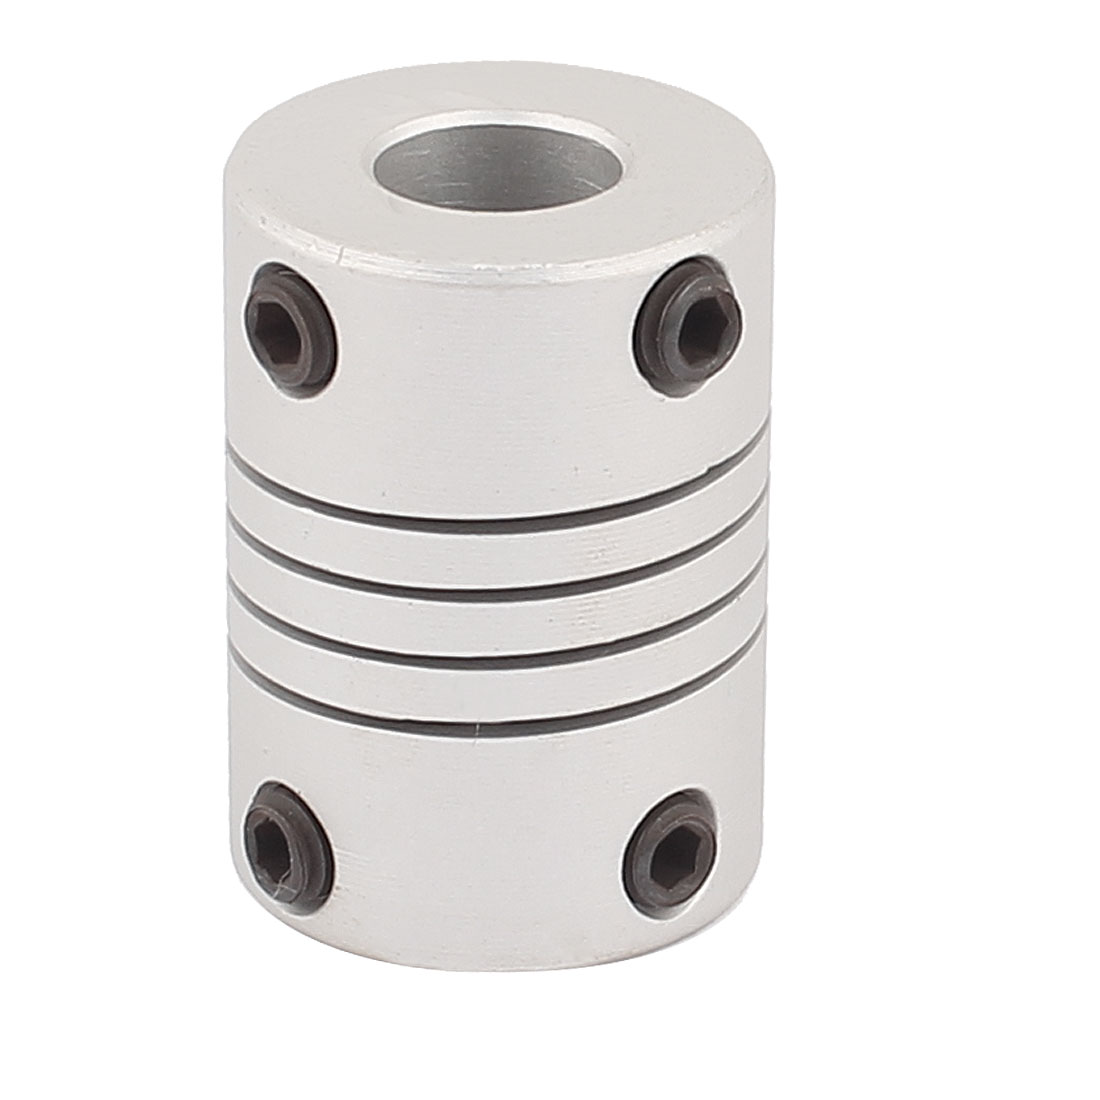 Motor Shaft Dia 8mm to 8mm Joint Helical Beam Coupler Coupling 18mm x 25mm